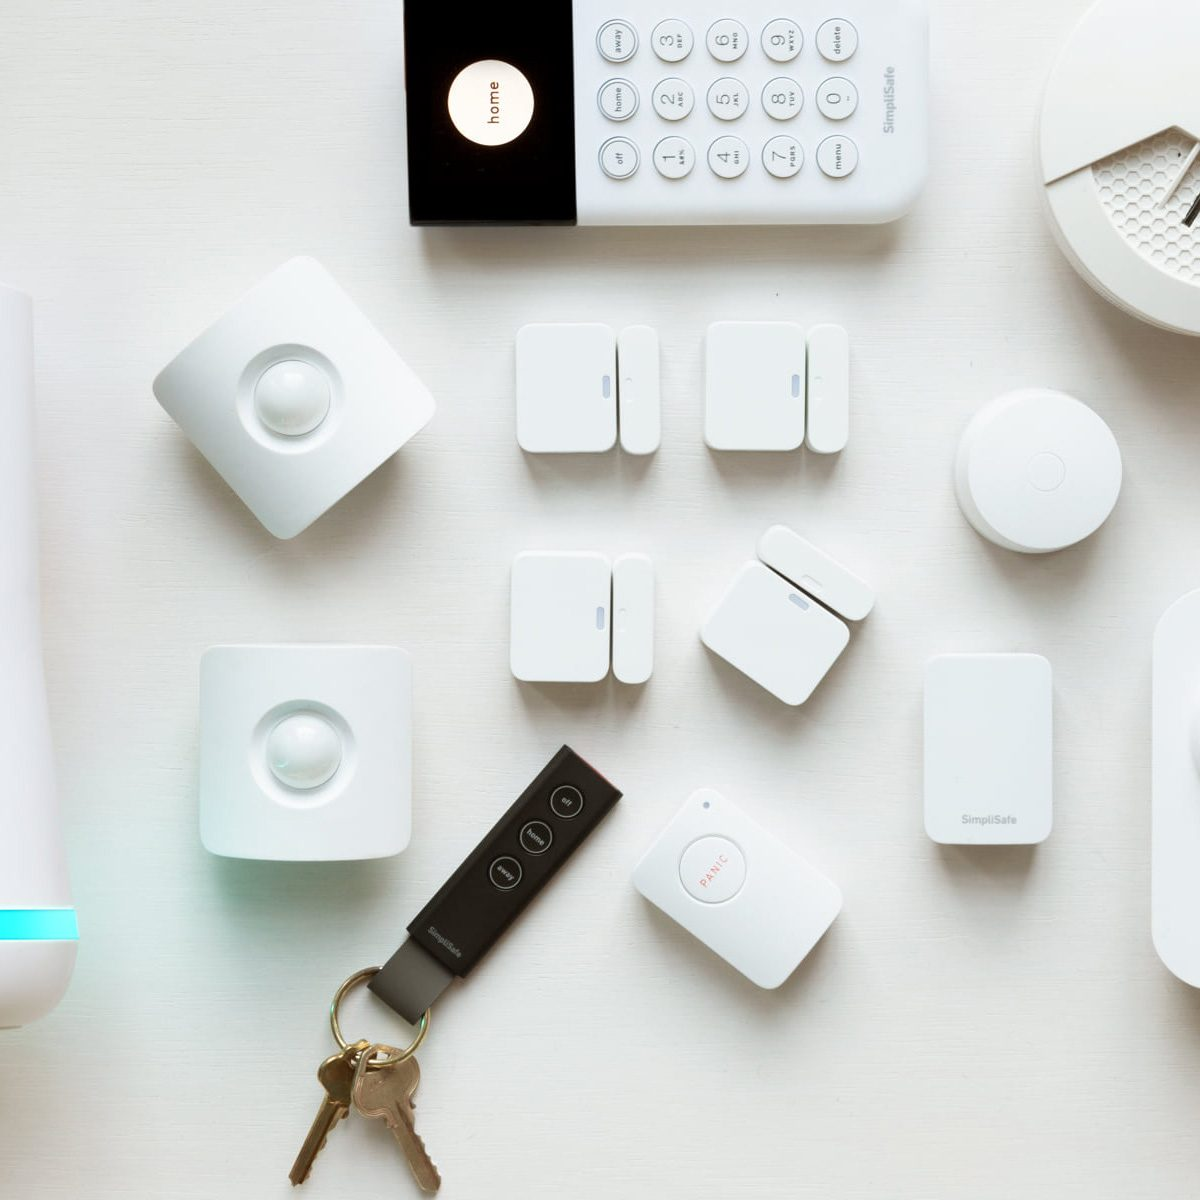 Best Smart Home Security Systems for 2019